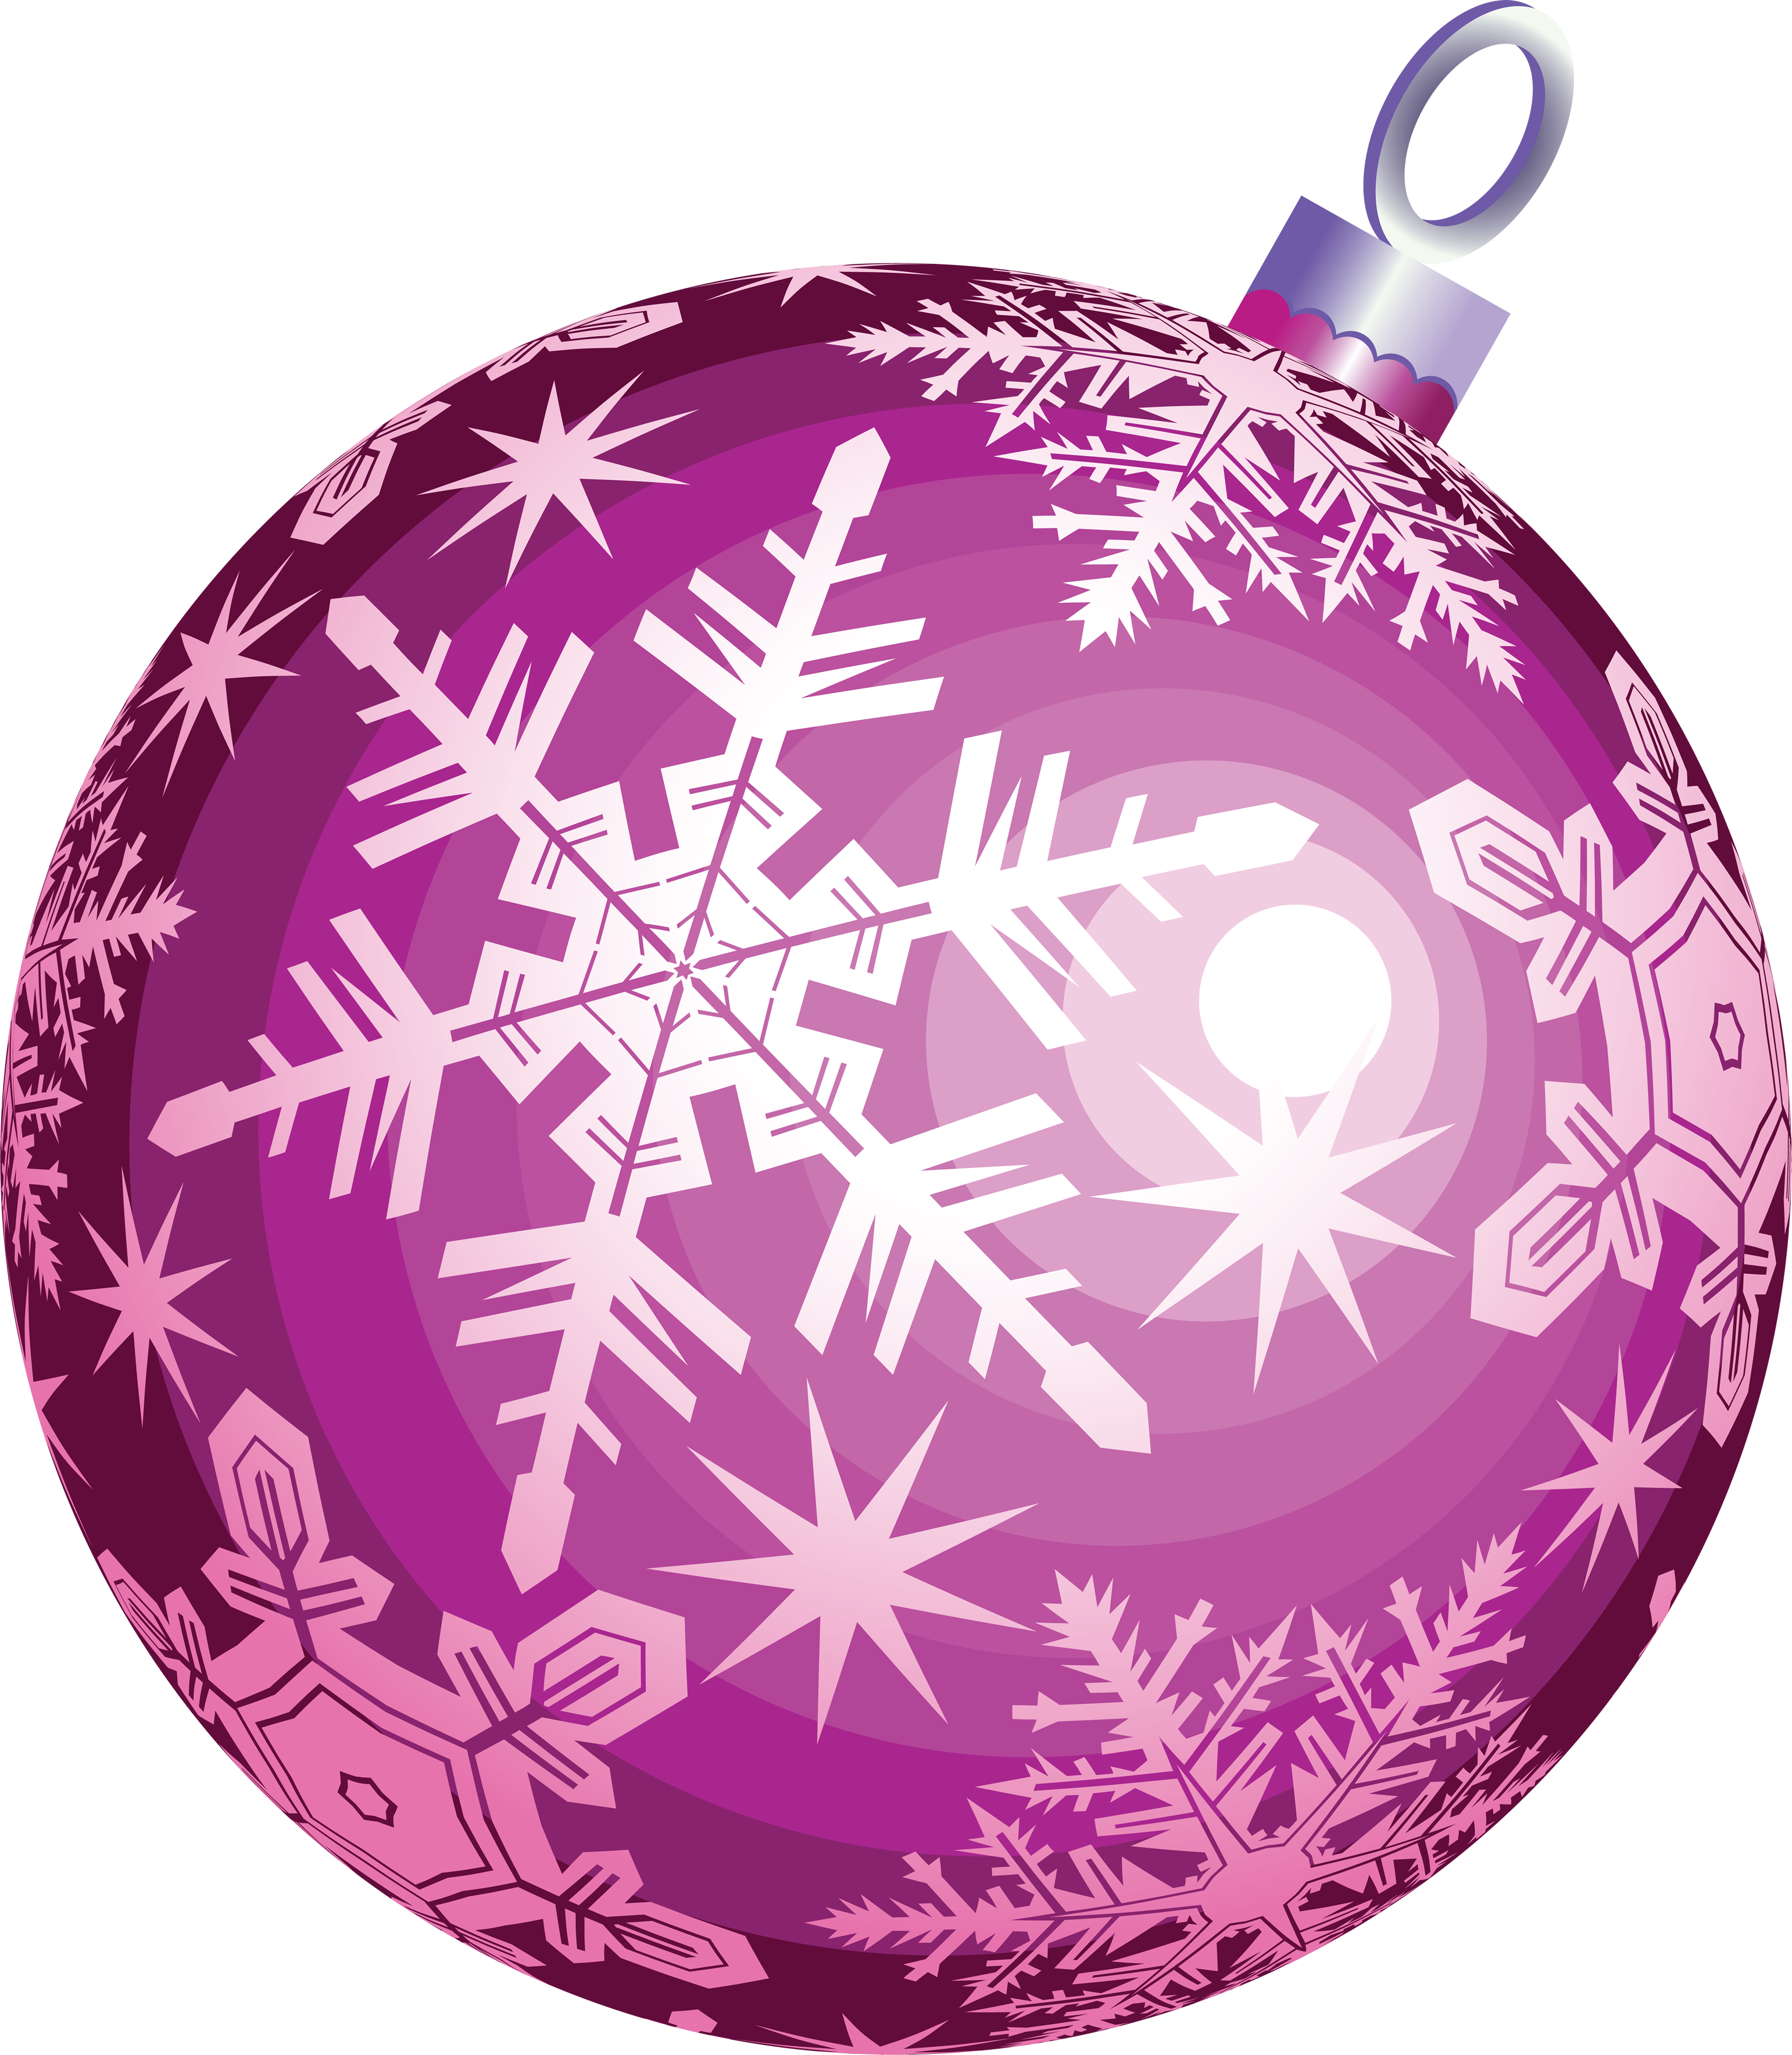 Christmas Ball Ornament Two | Isolated Stock Photo by noBACKS.com